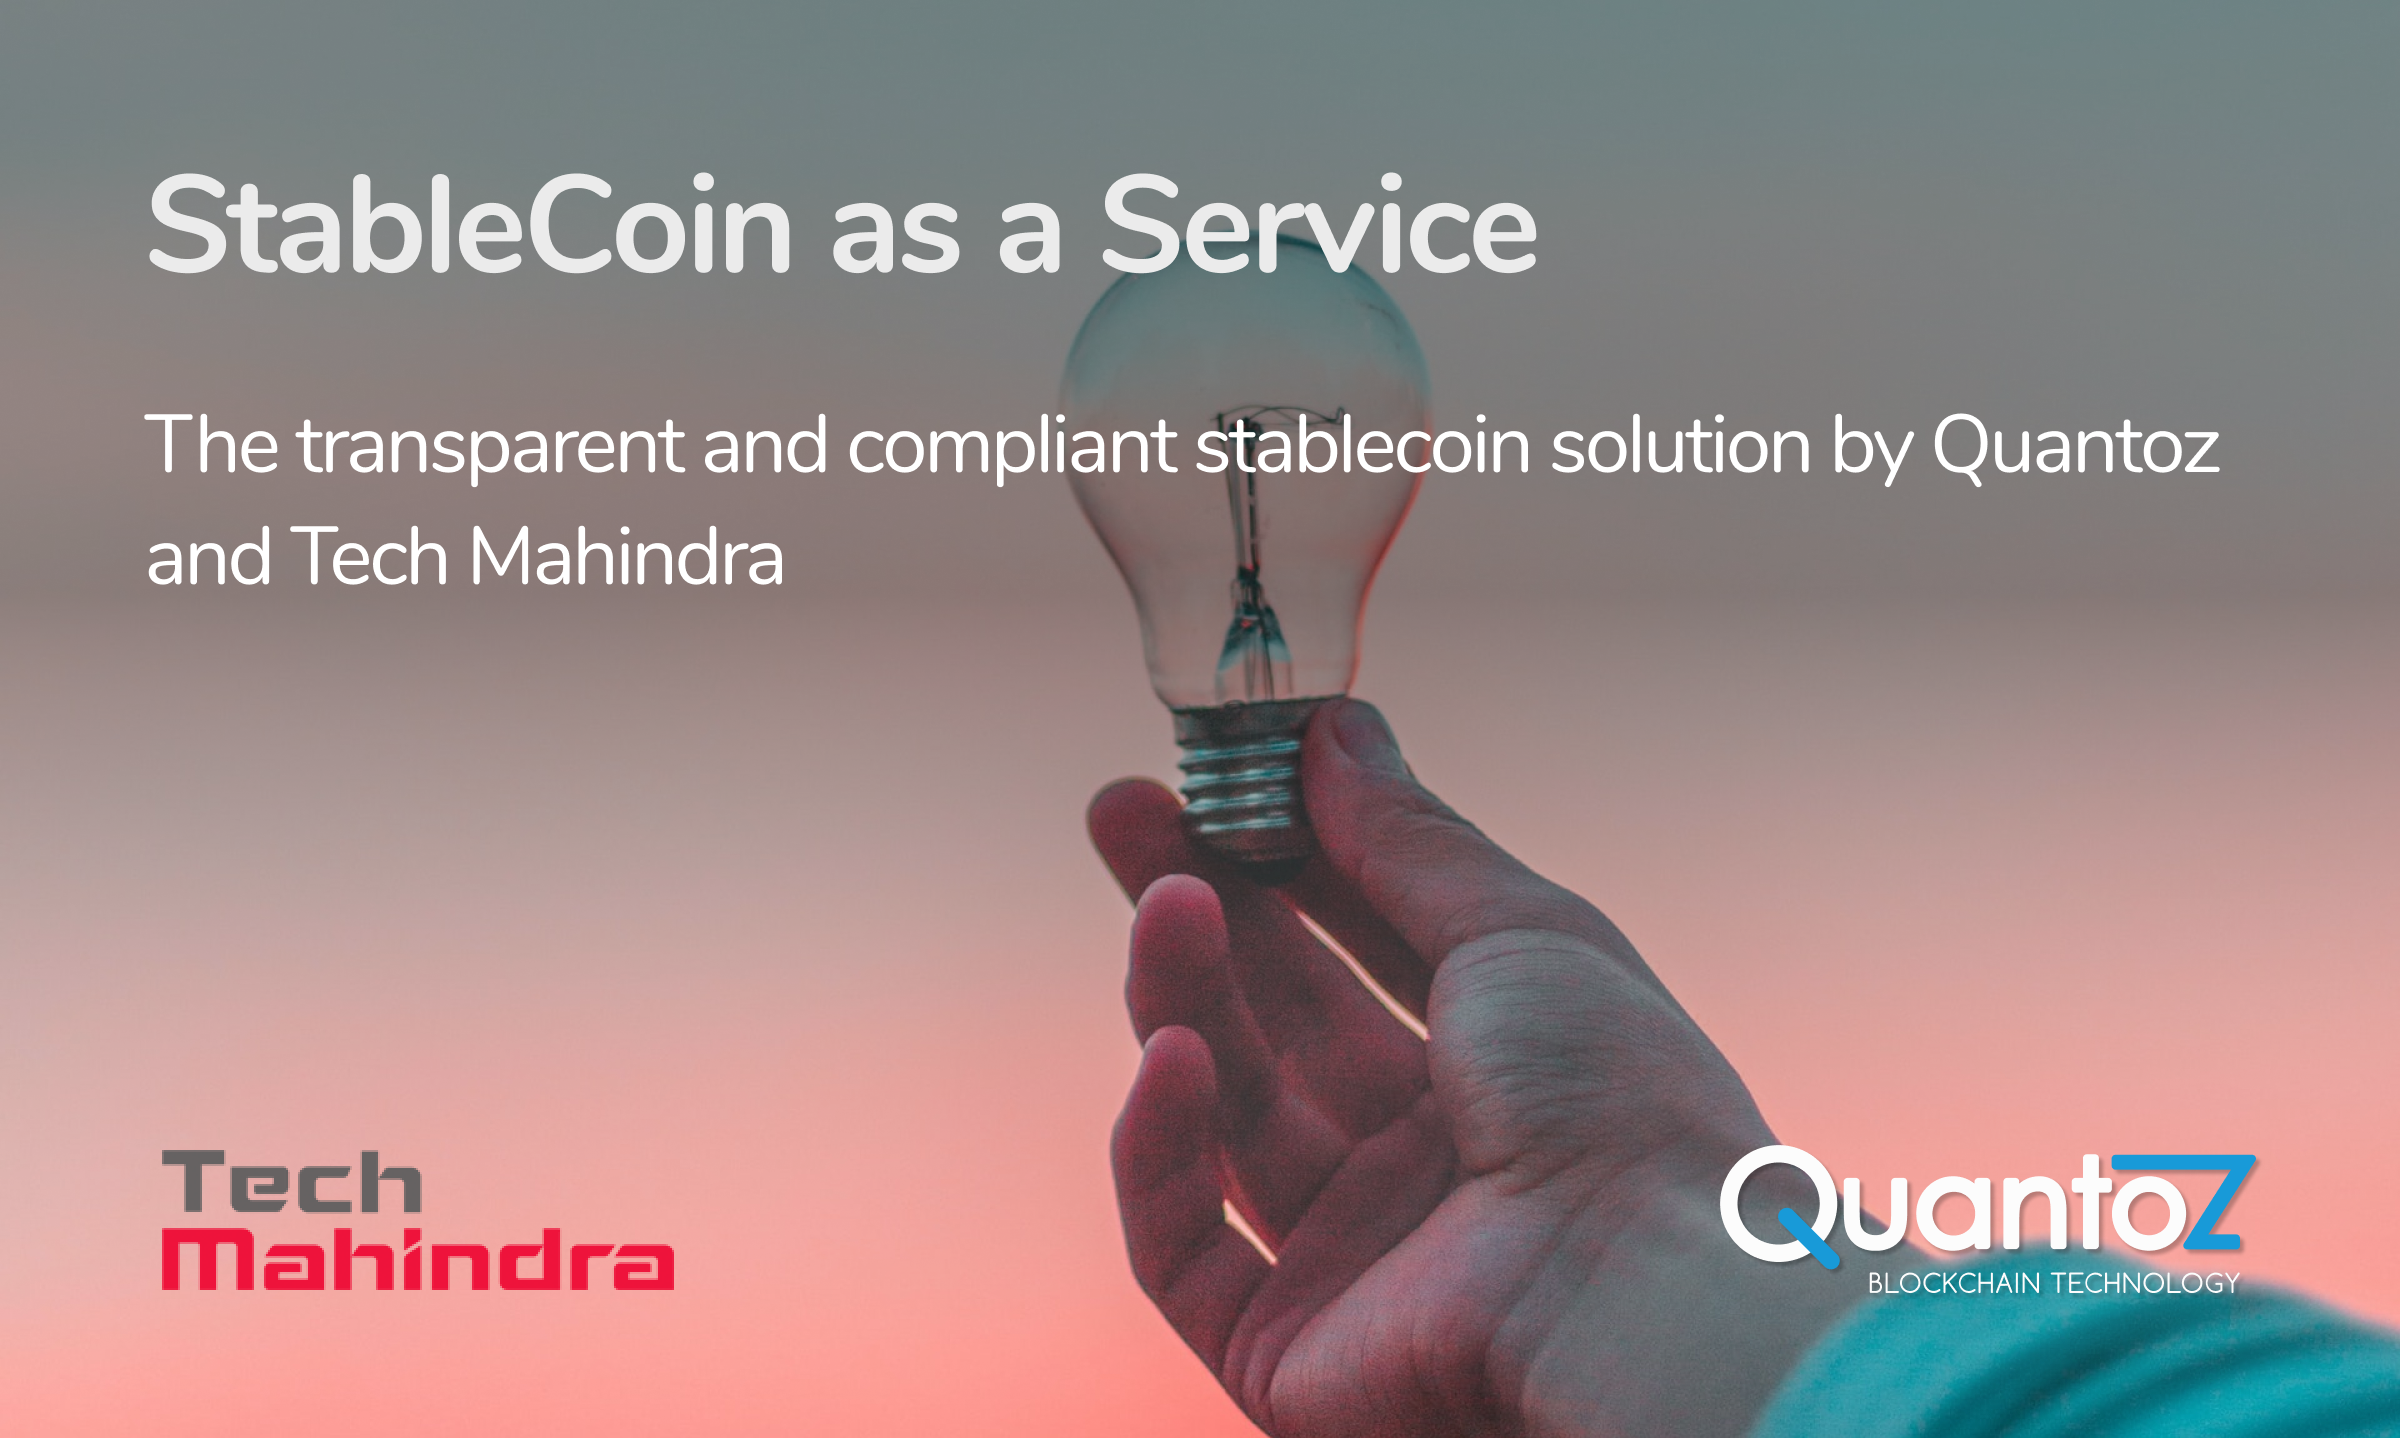 Stablecoin Tech Mahindra blog post